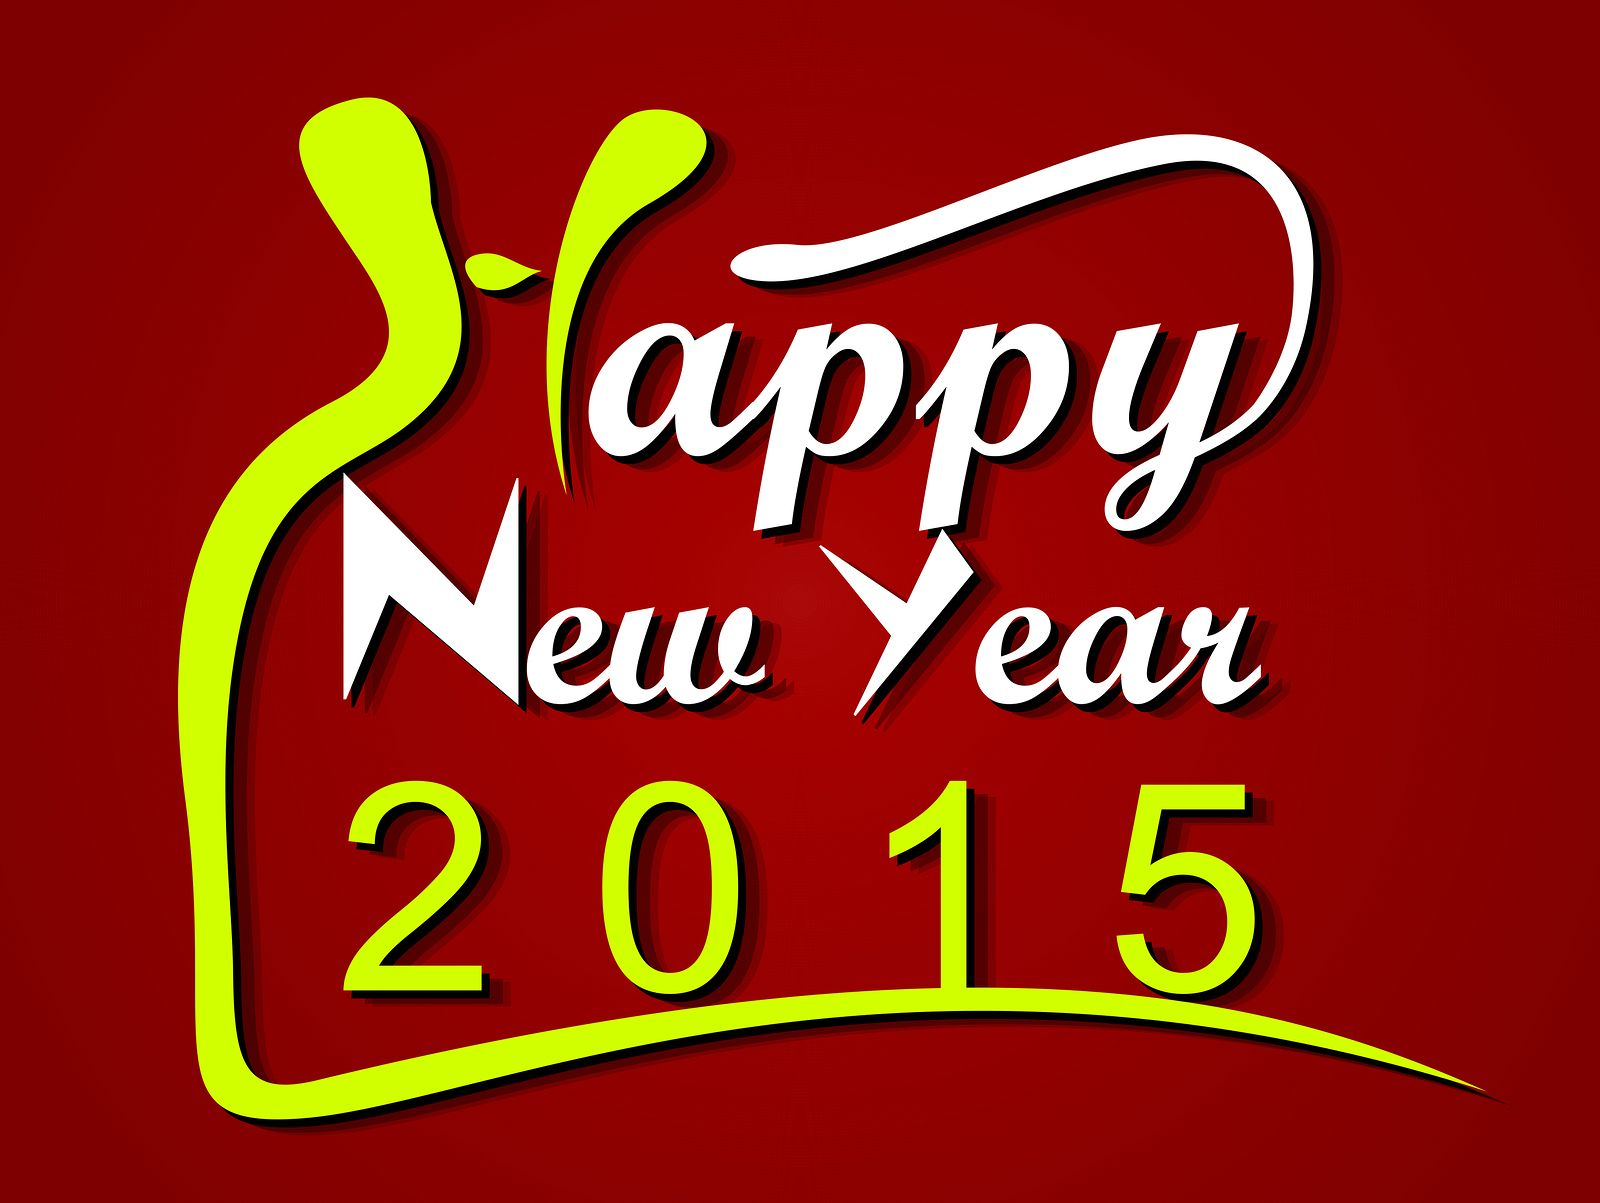 Wallz Hut: Happy New Year Messages Pictures | celebrity | Pinterest